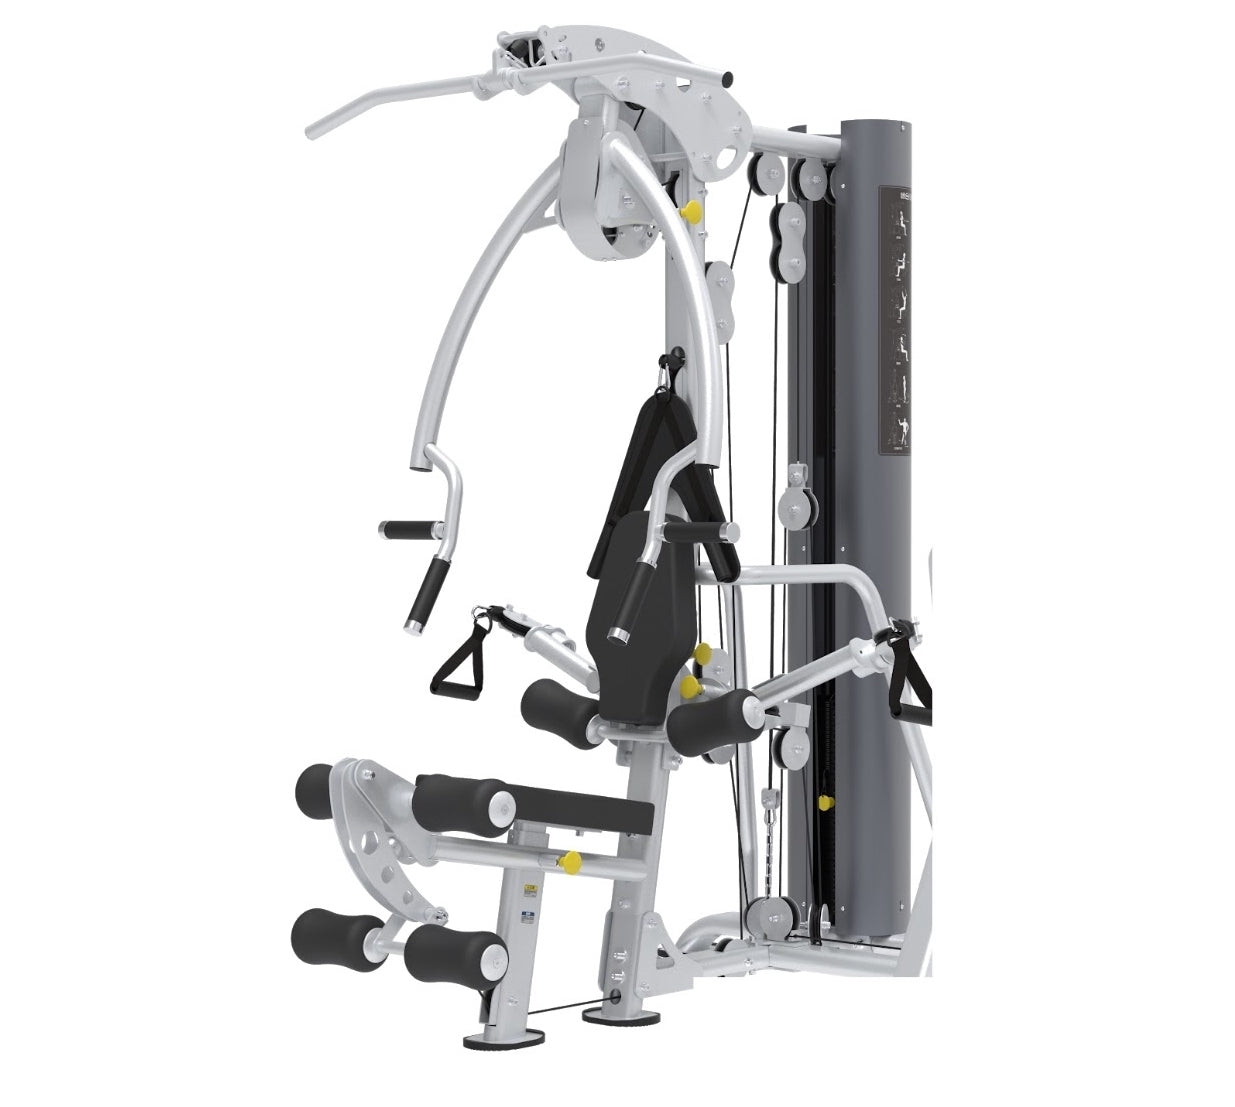 XPT Multi-Station Gym System